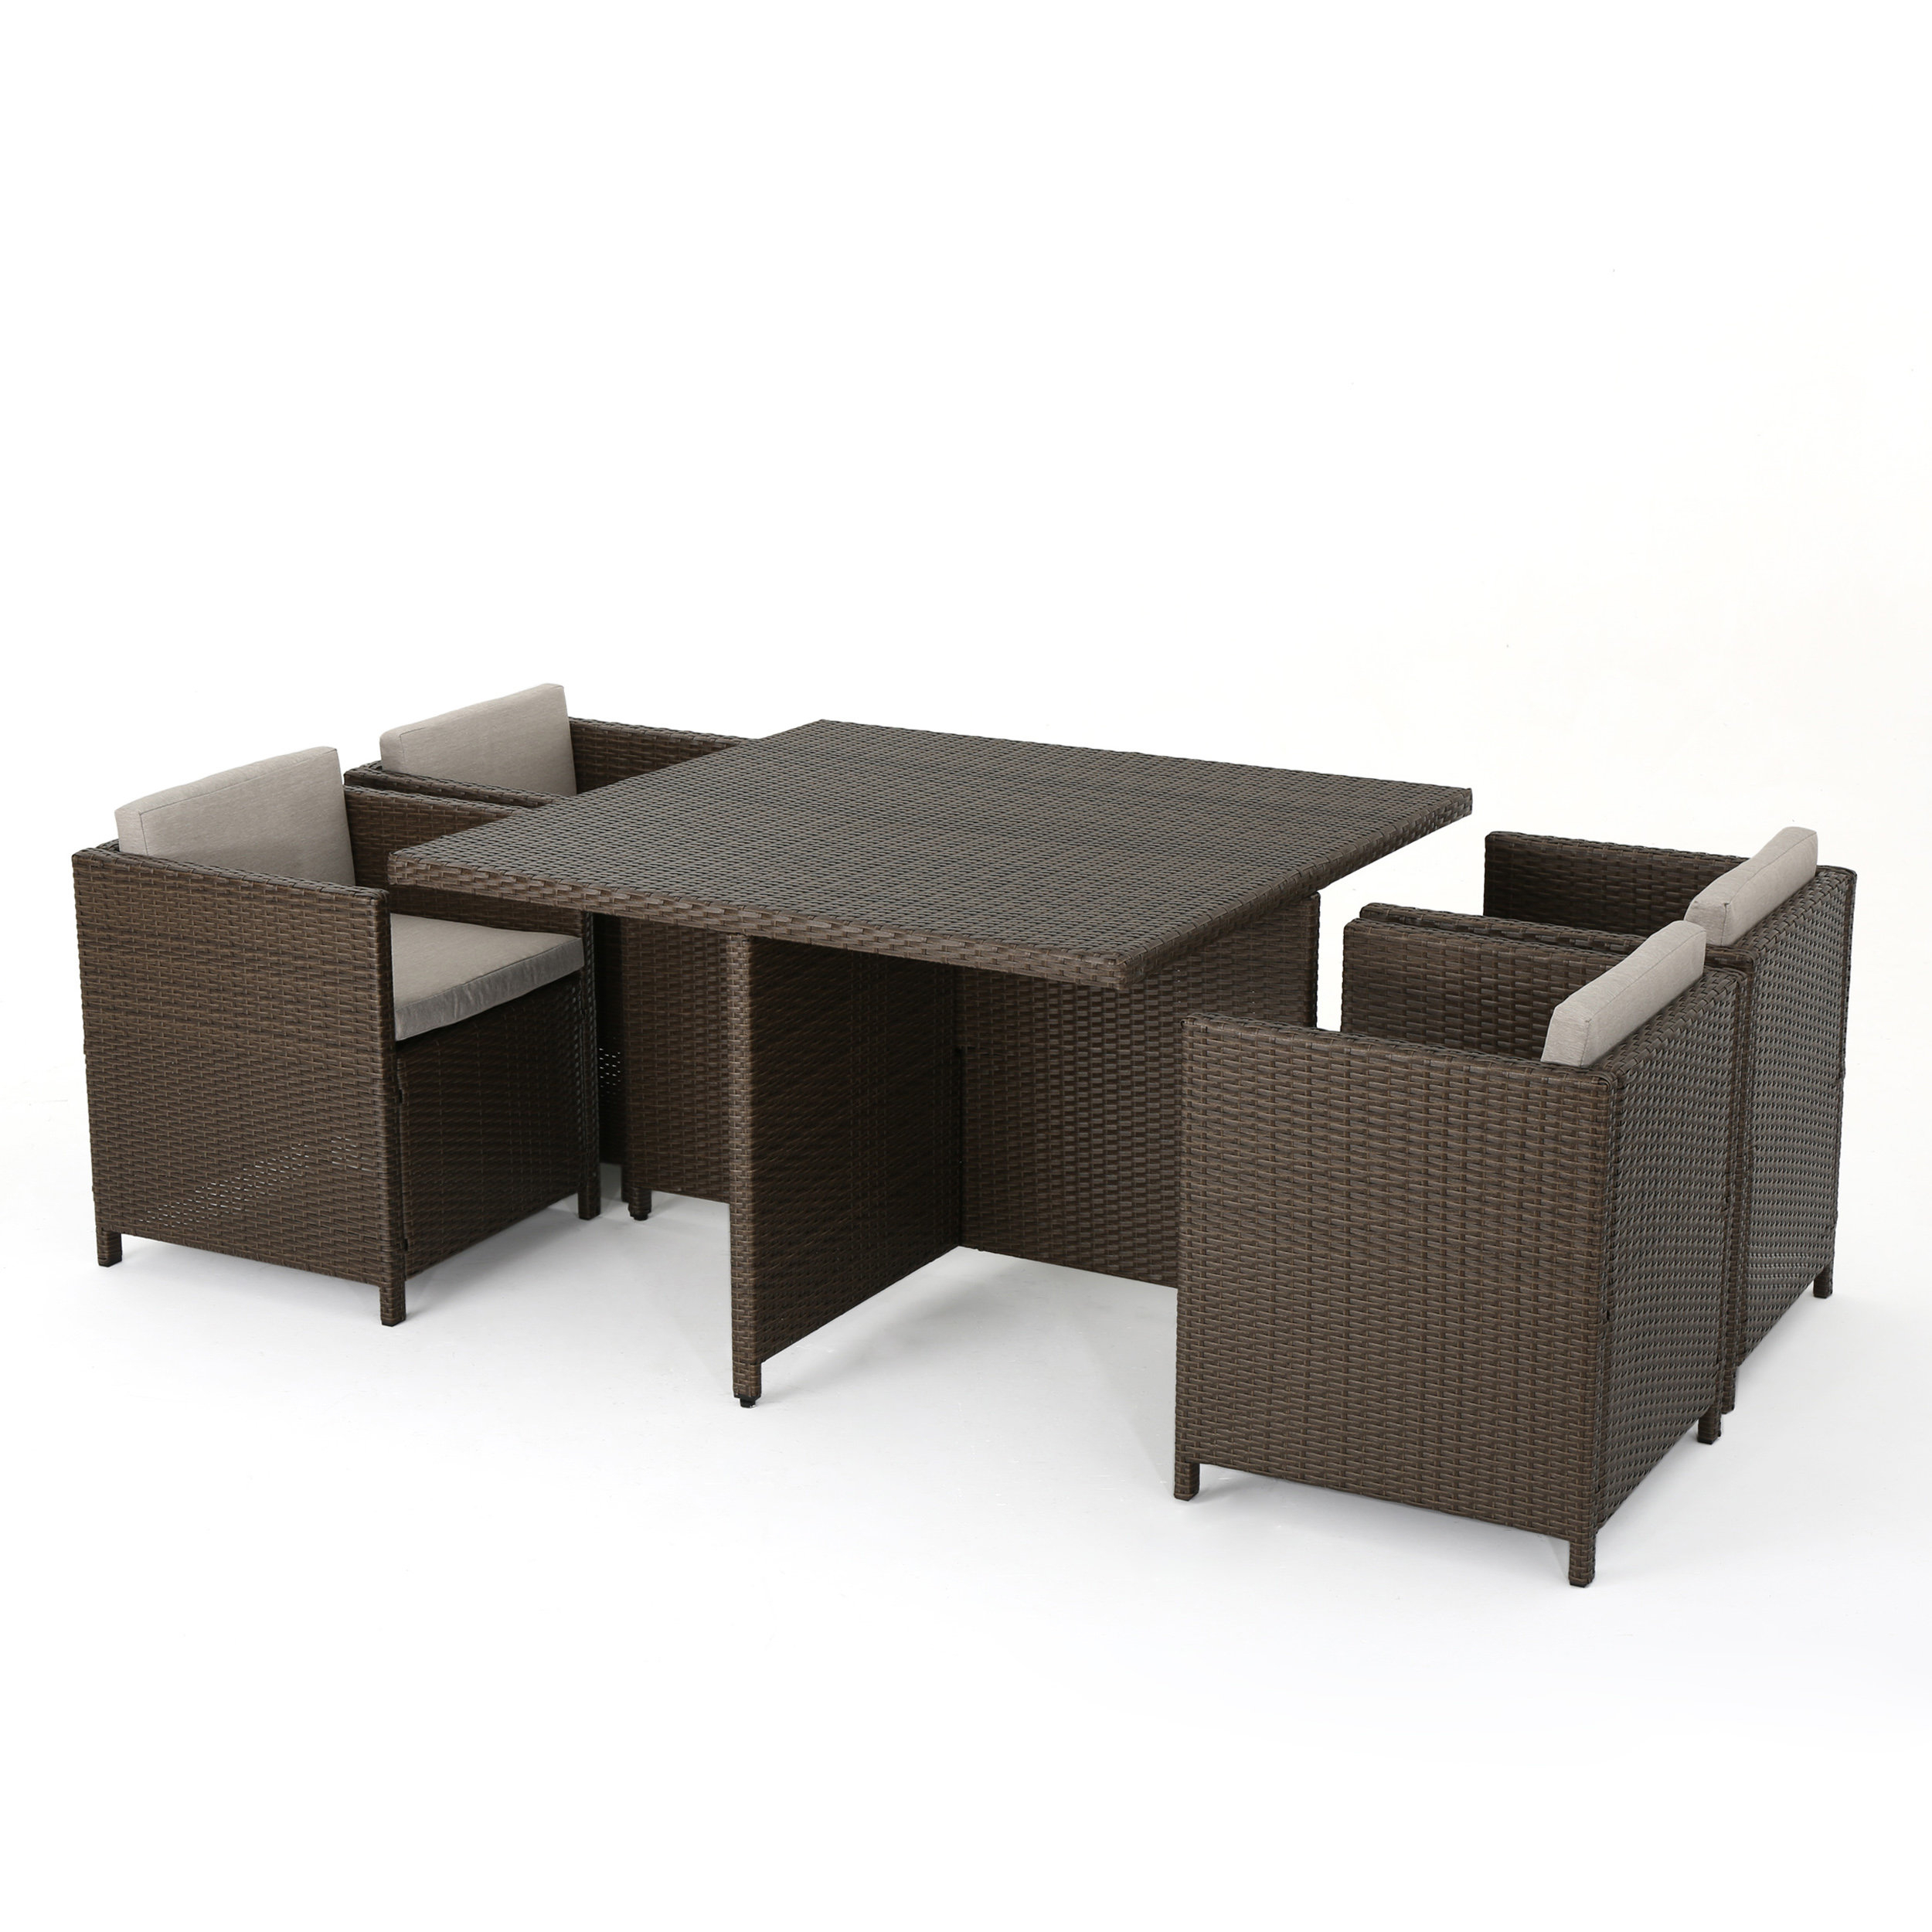 Bashir 5 Piece Dining Set With Cushions Within Current Berrios 3 Piece Counter Height Dining Sets (View 20 of 20)